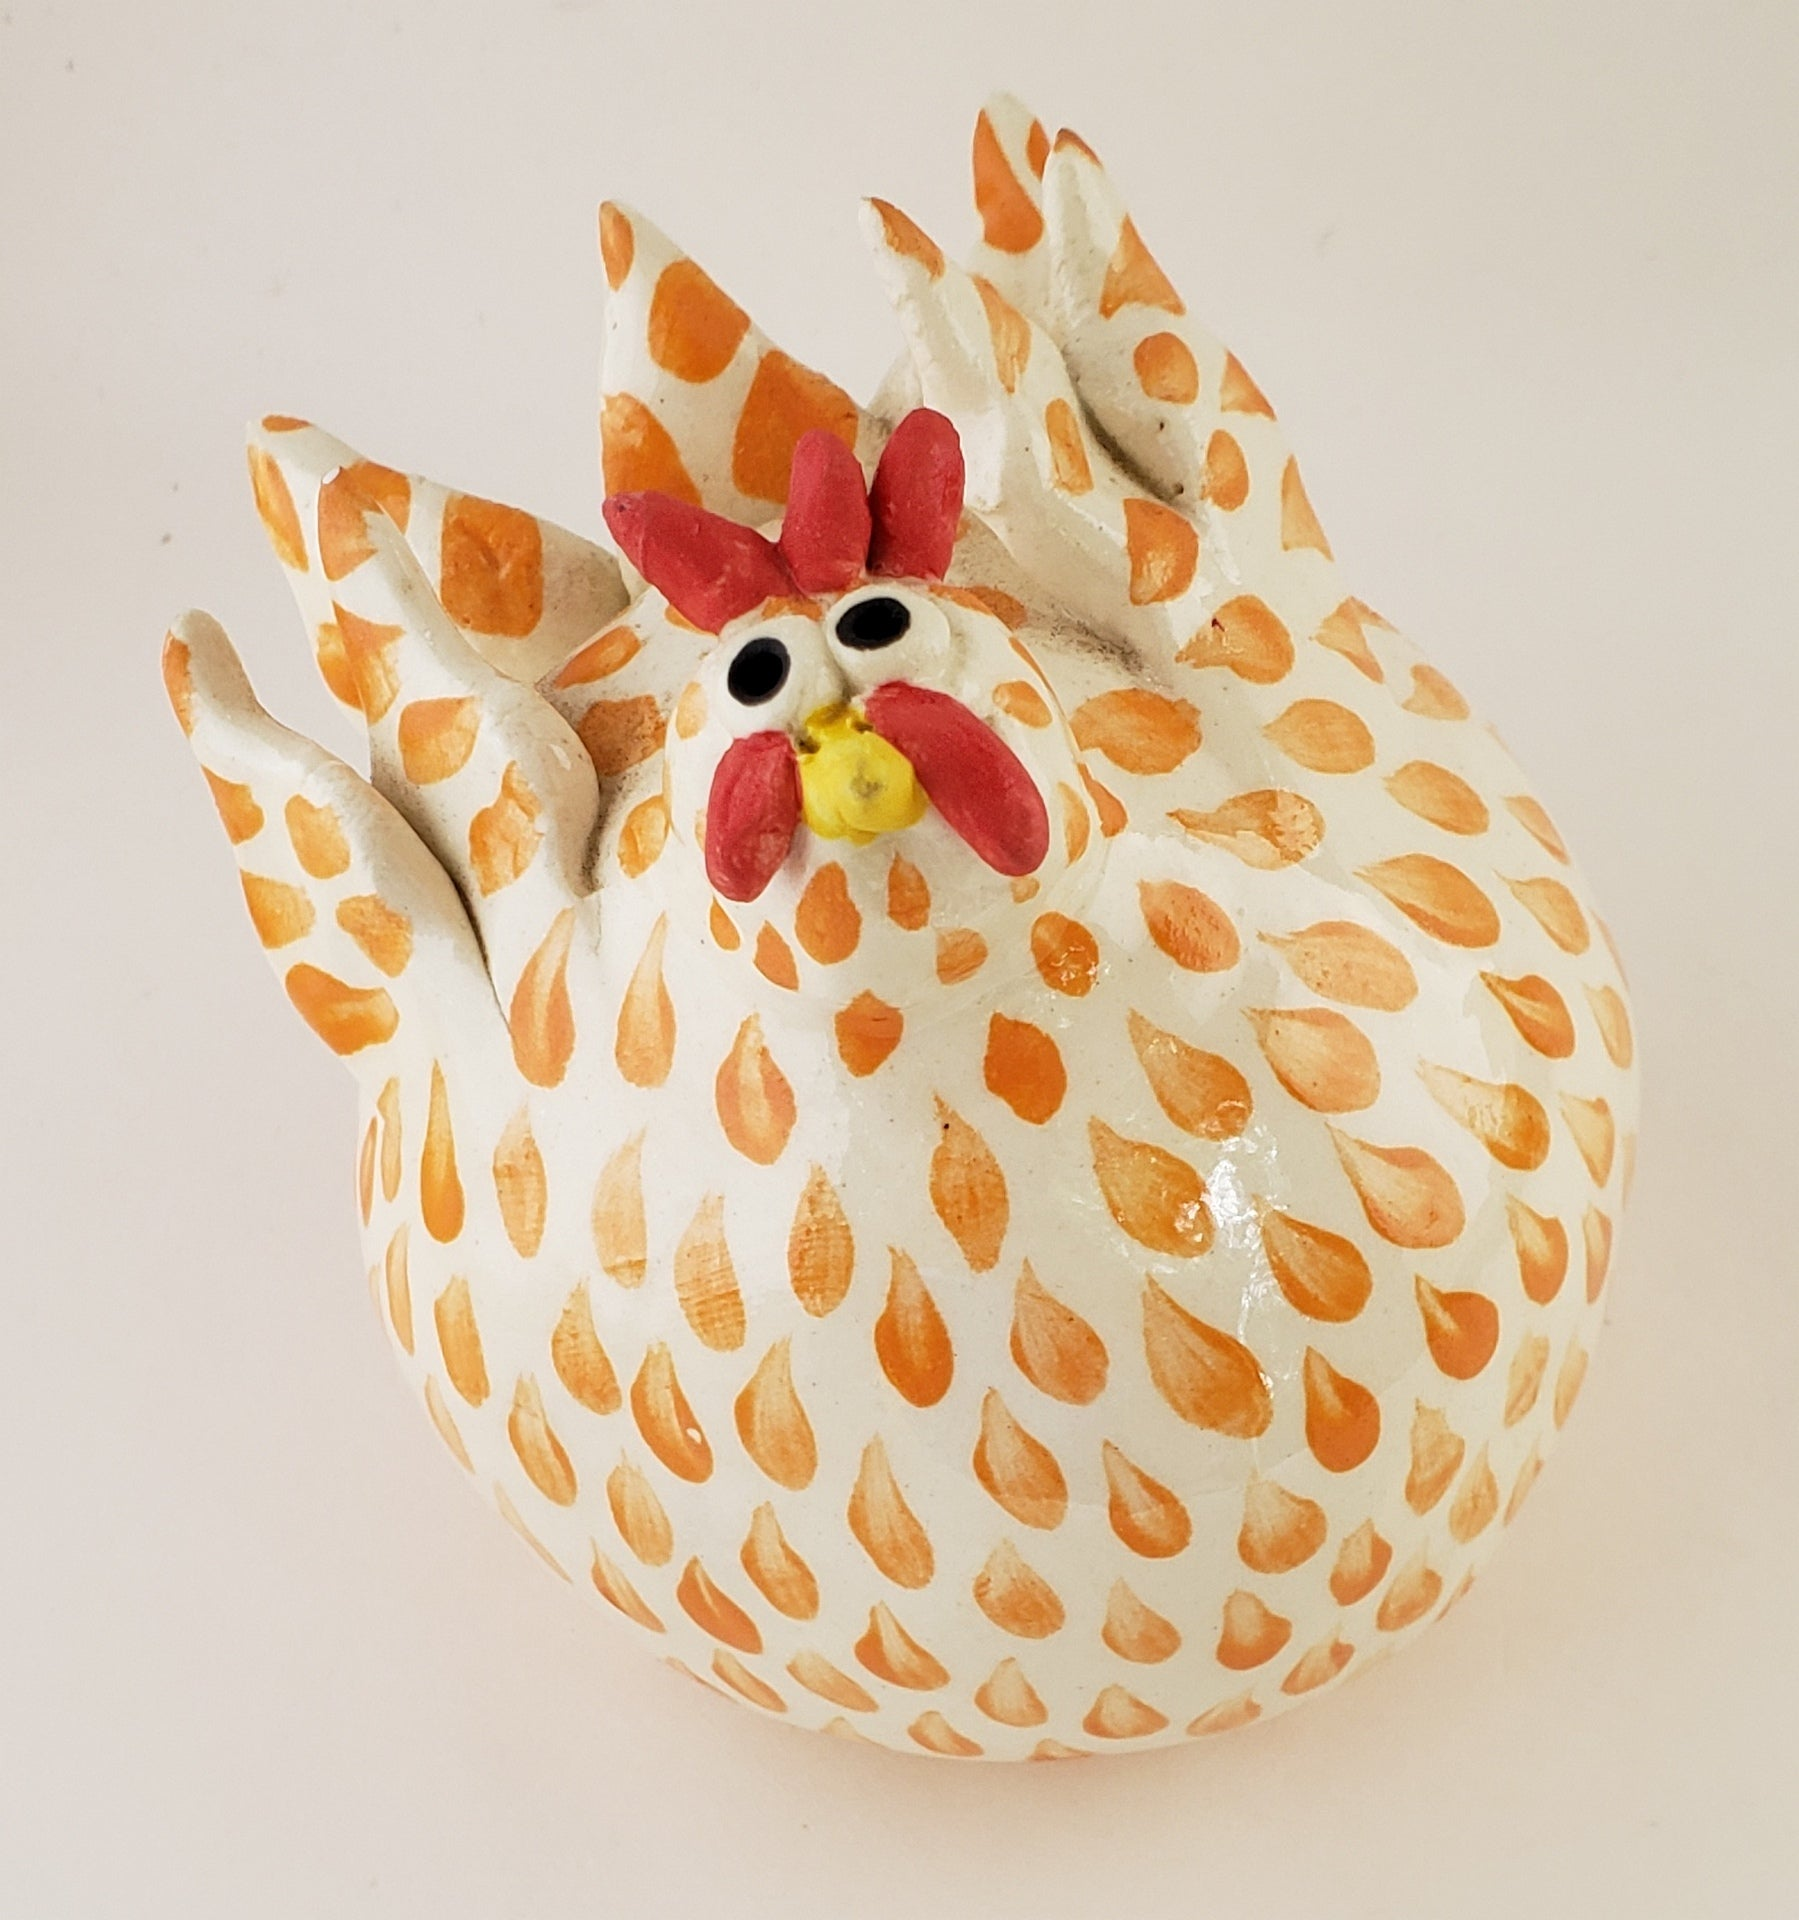 Orange and White Chicken Medium - Artworks by Karen Fincannon